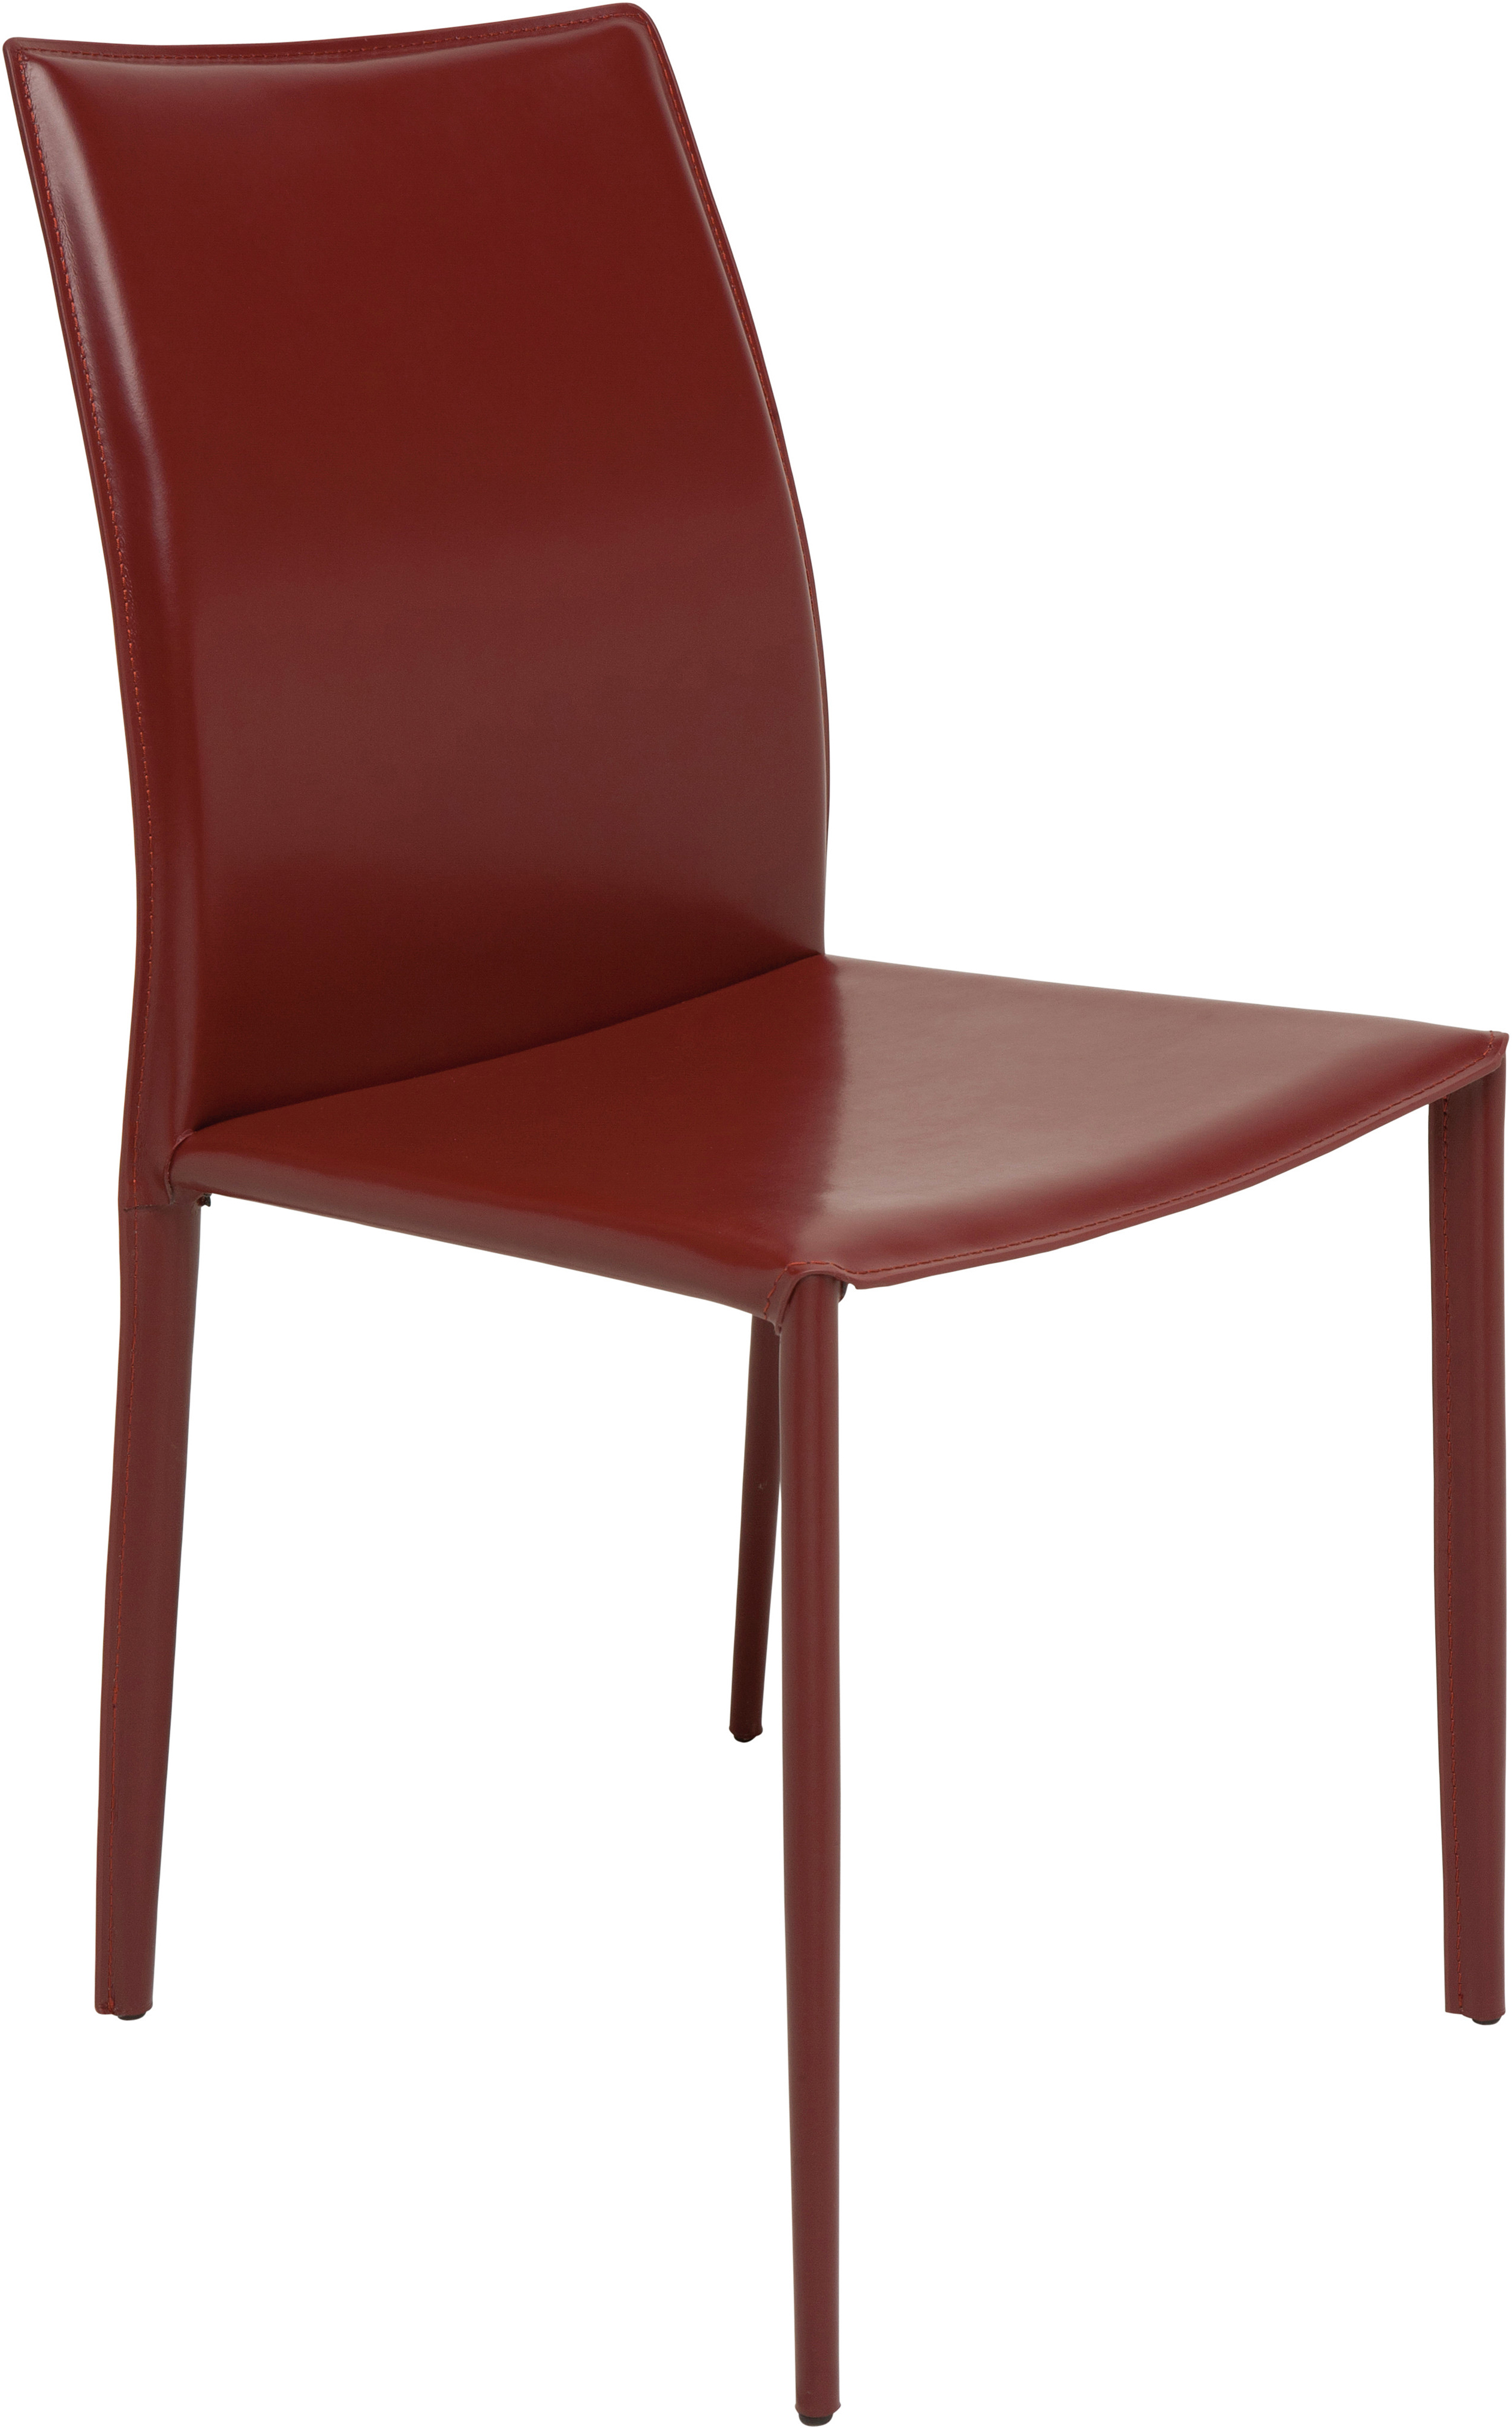 the nuevo sienna dining chair in bordeaux